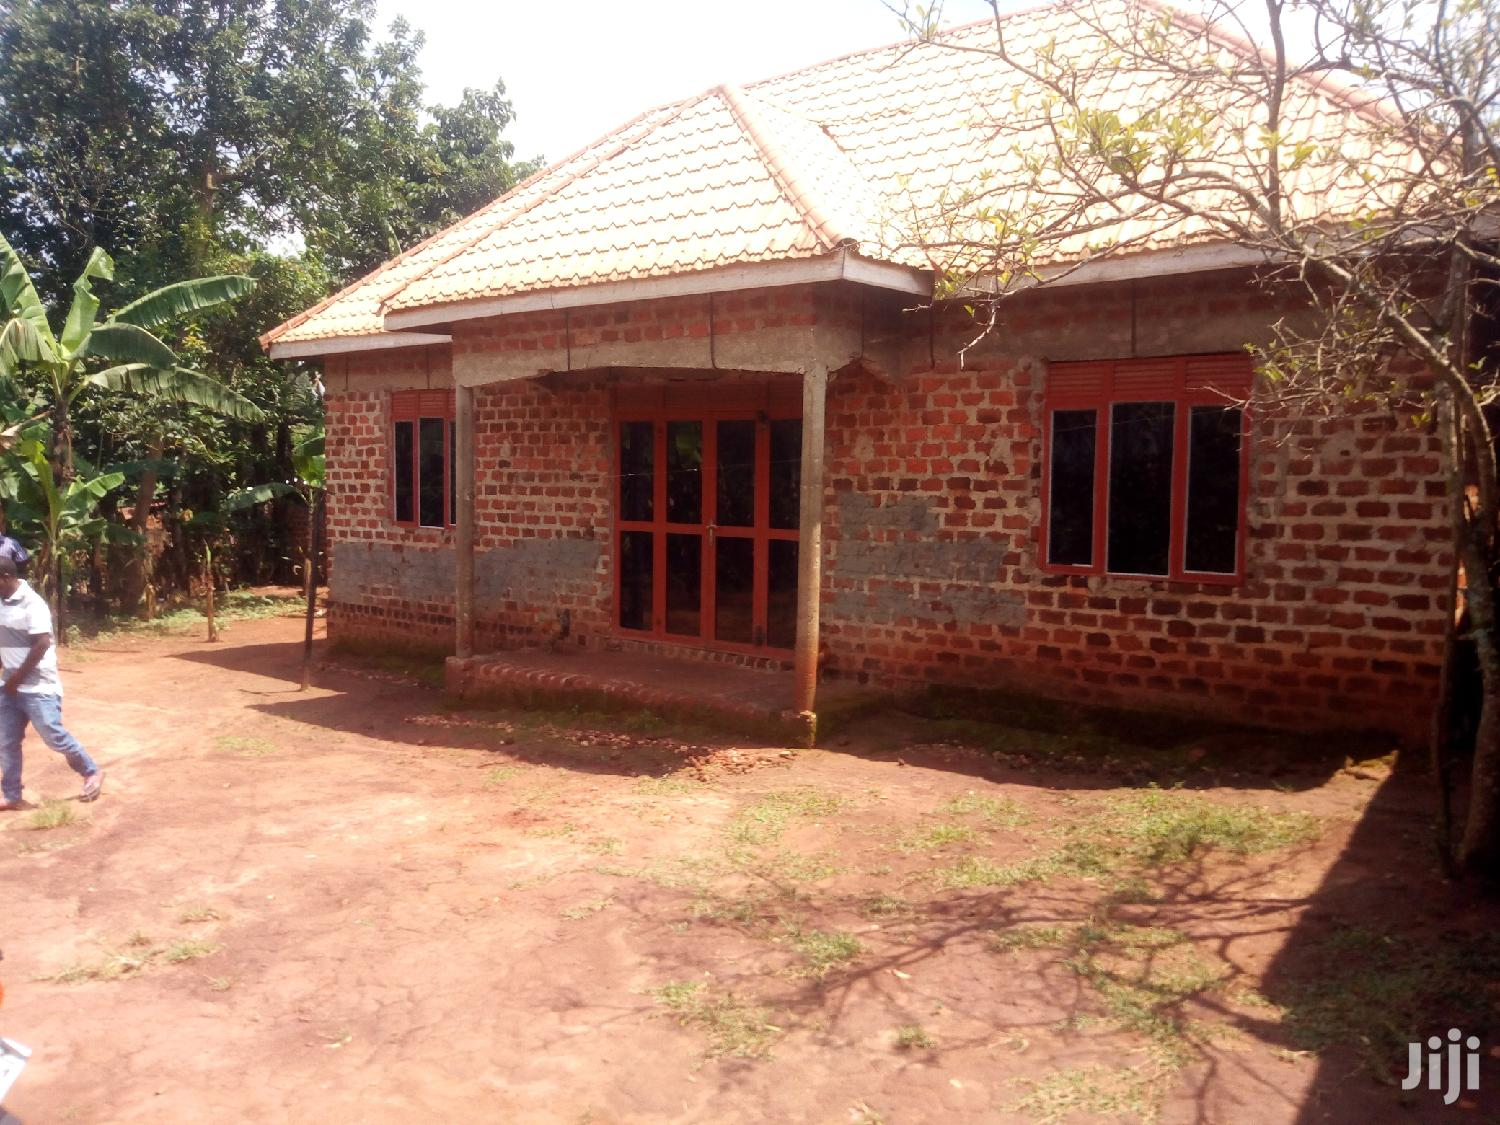 Kira 3bedrooms House On 11.5dessimales Available For Sale | Houses & Apartments For Sale for sale in Kampala, Central Region, Uganda